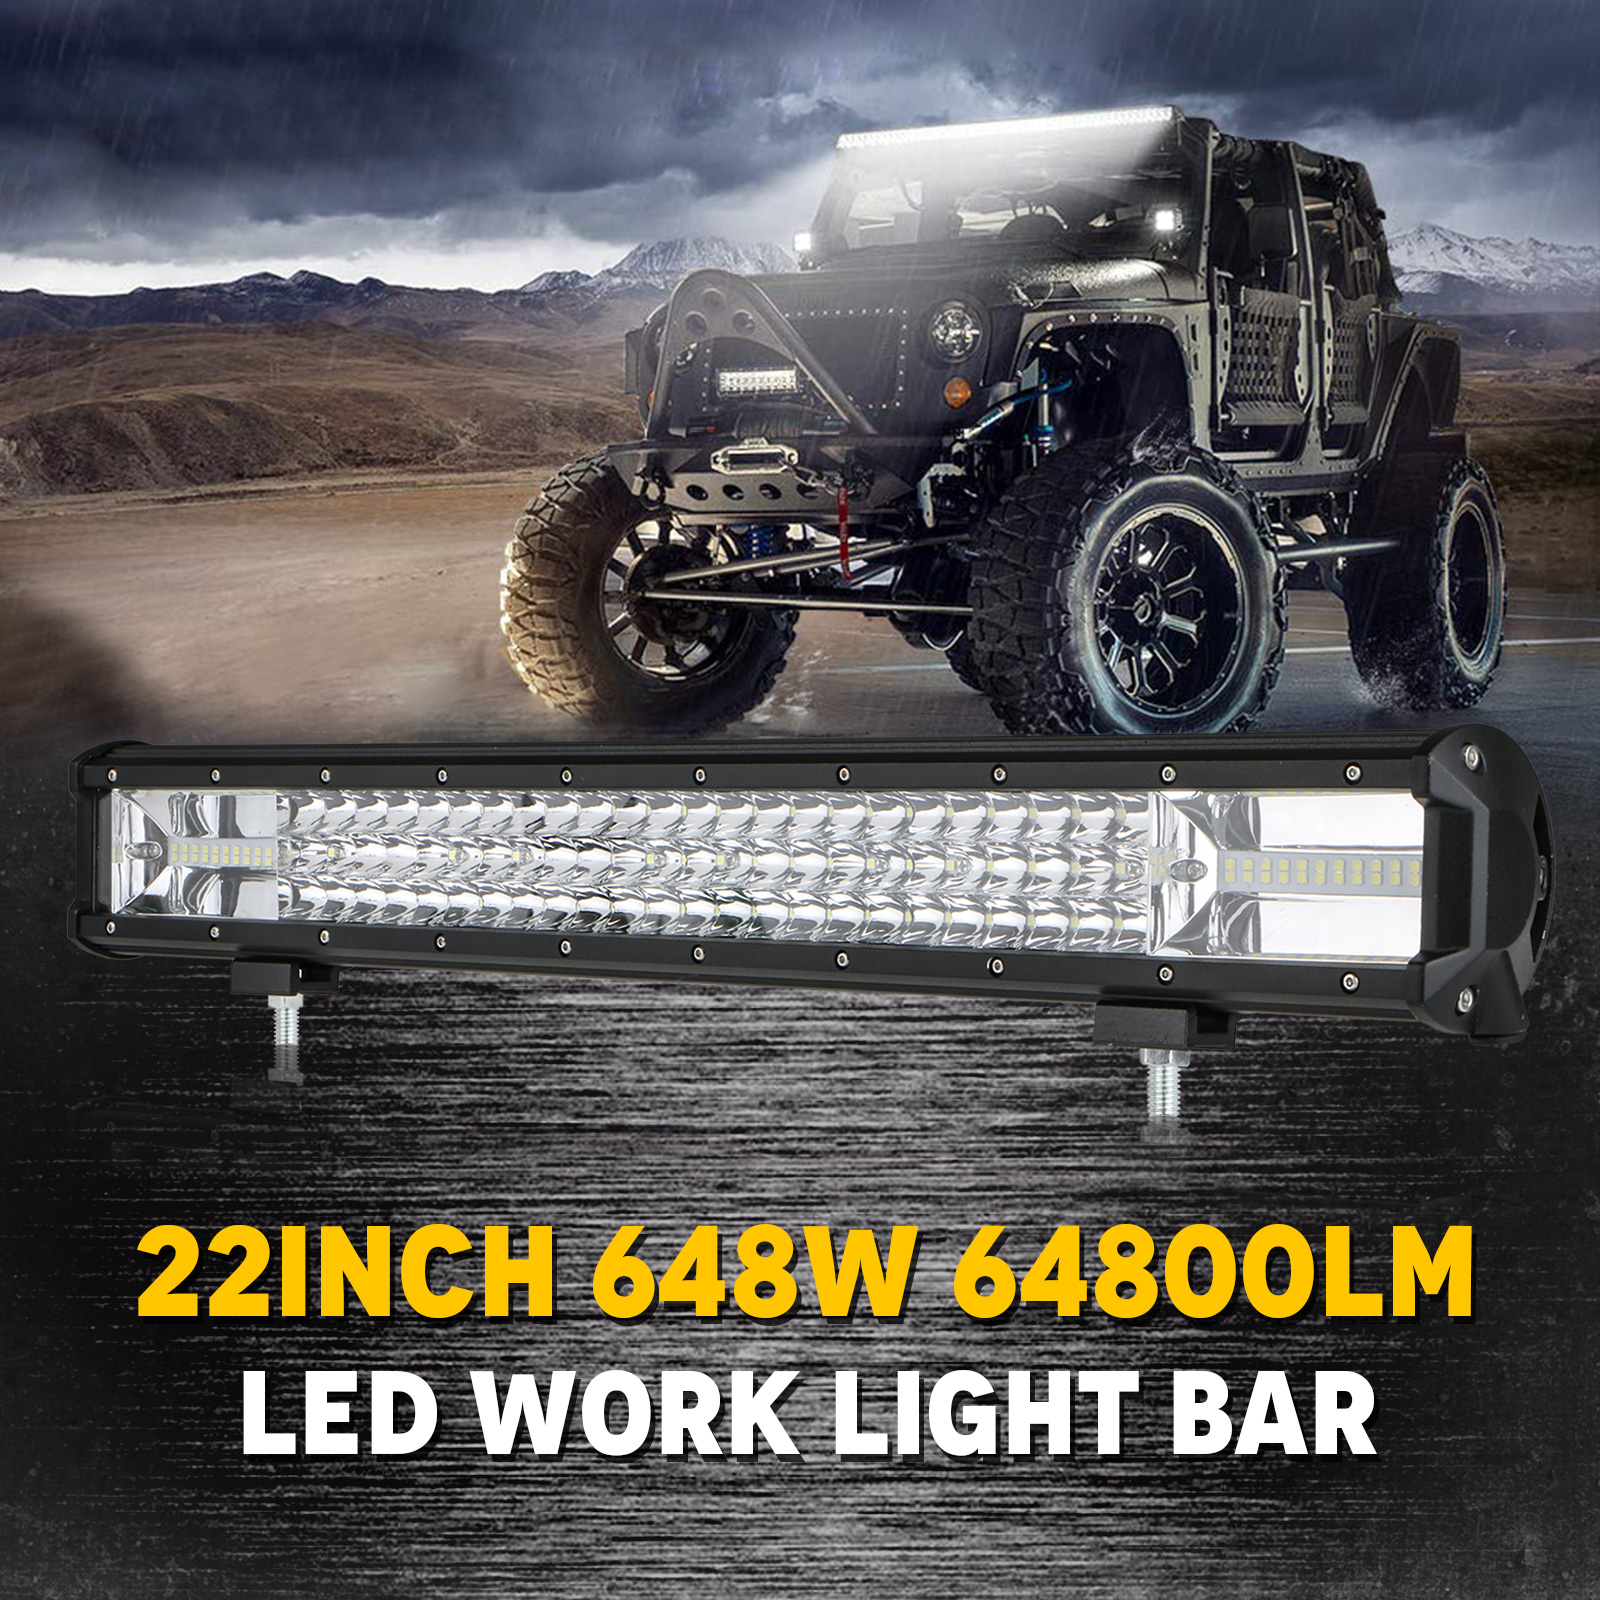 hight resolution of tsv 22inch led light bar 108w off road driving lights led work light spot flood fog lamp with wiring harness for polaris rzr toyota gmc utv truck atv jeep